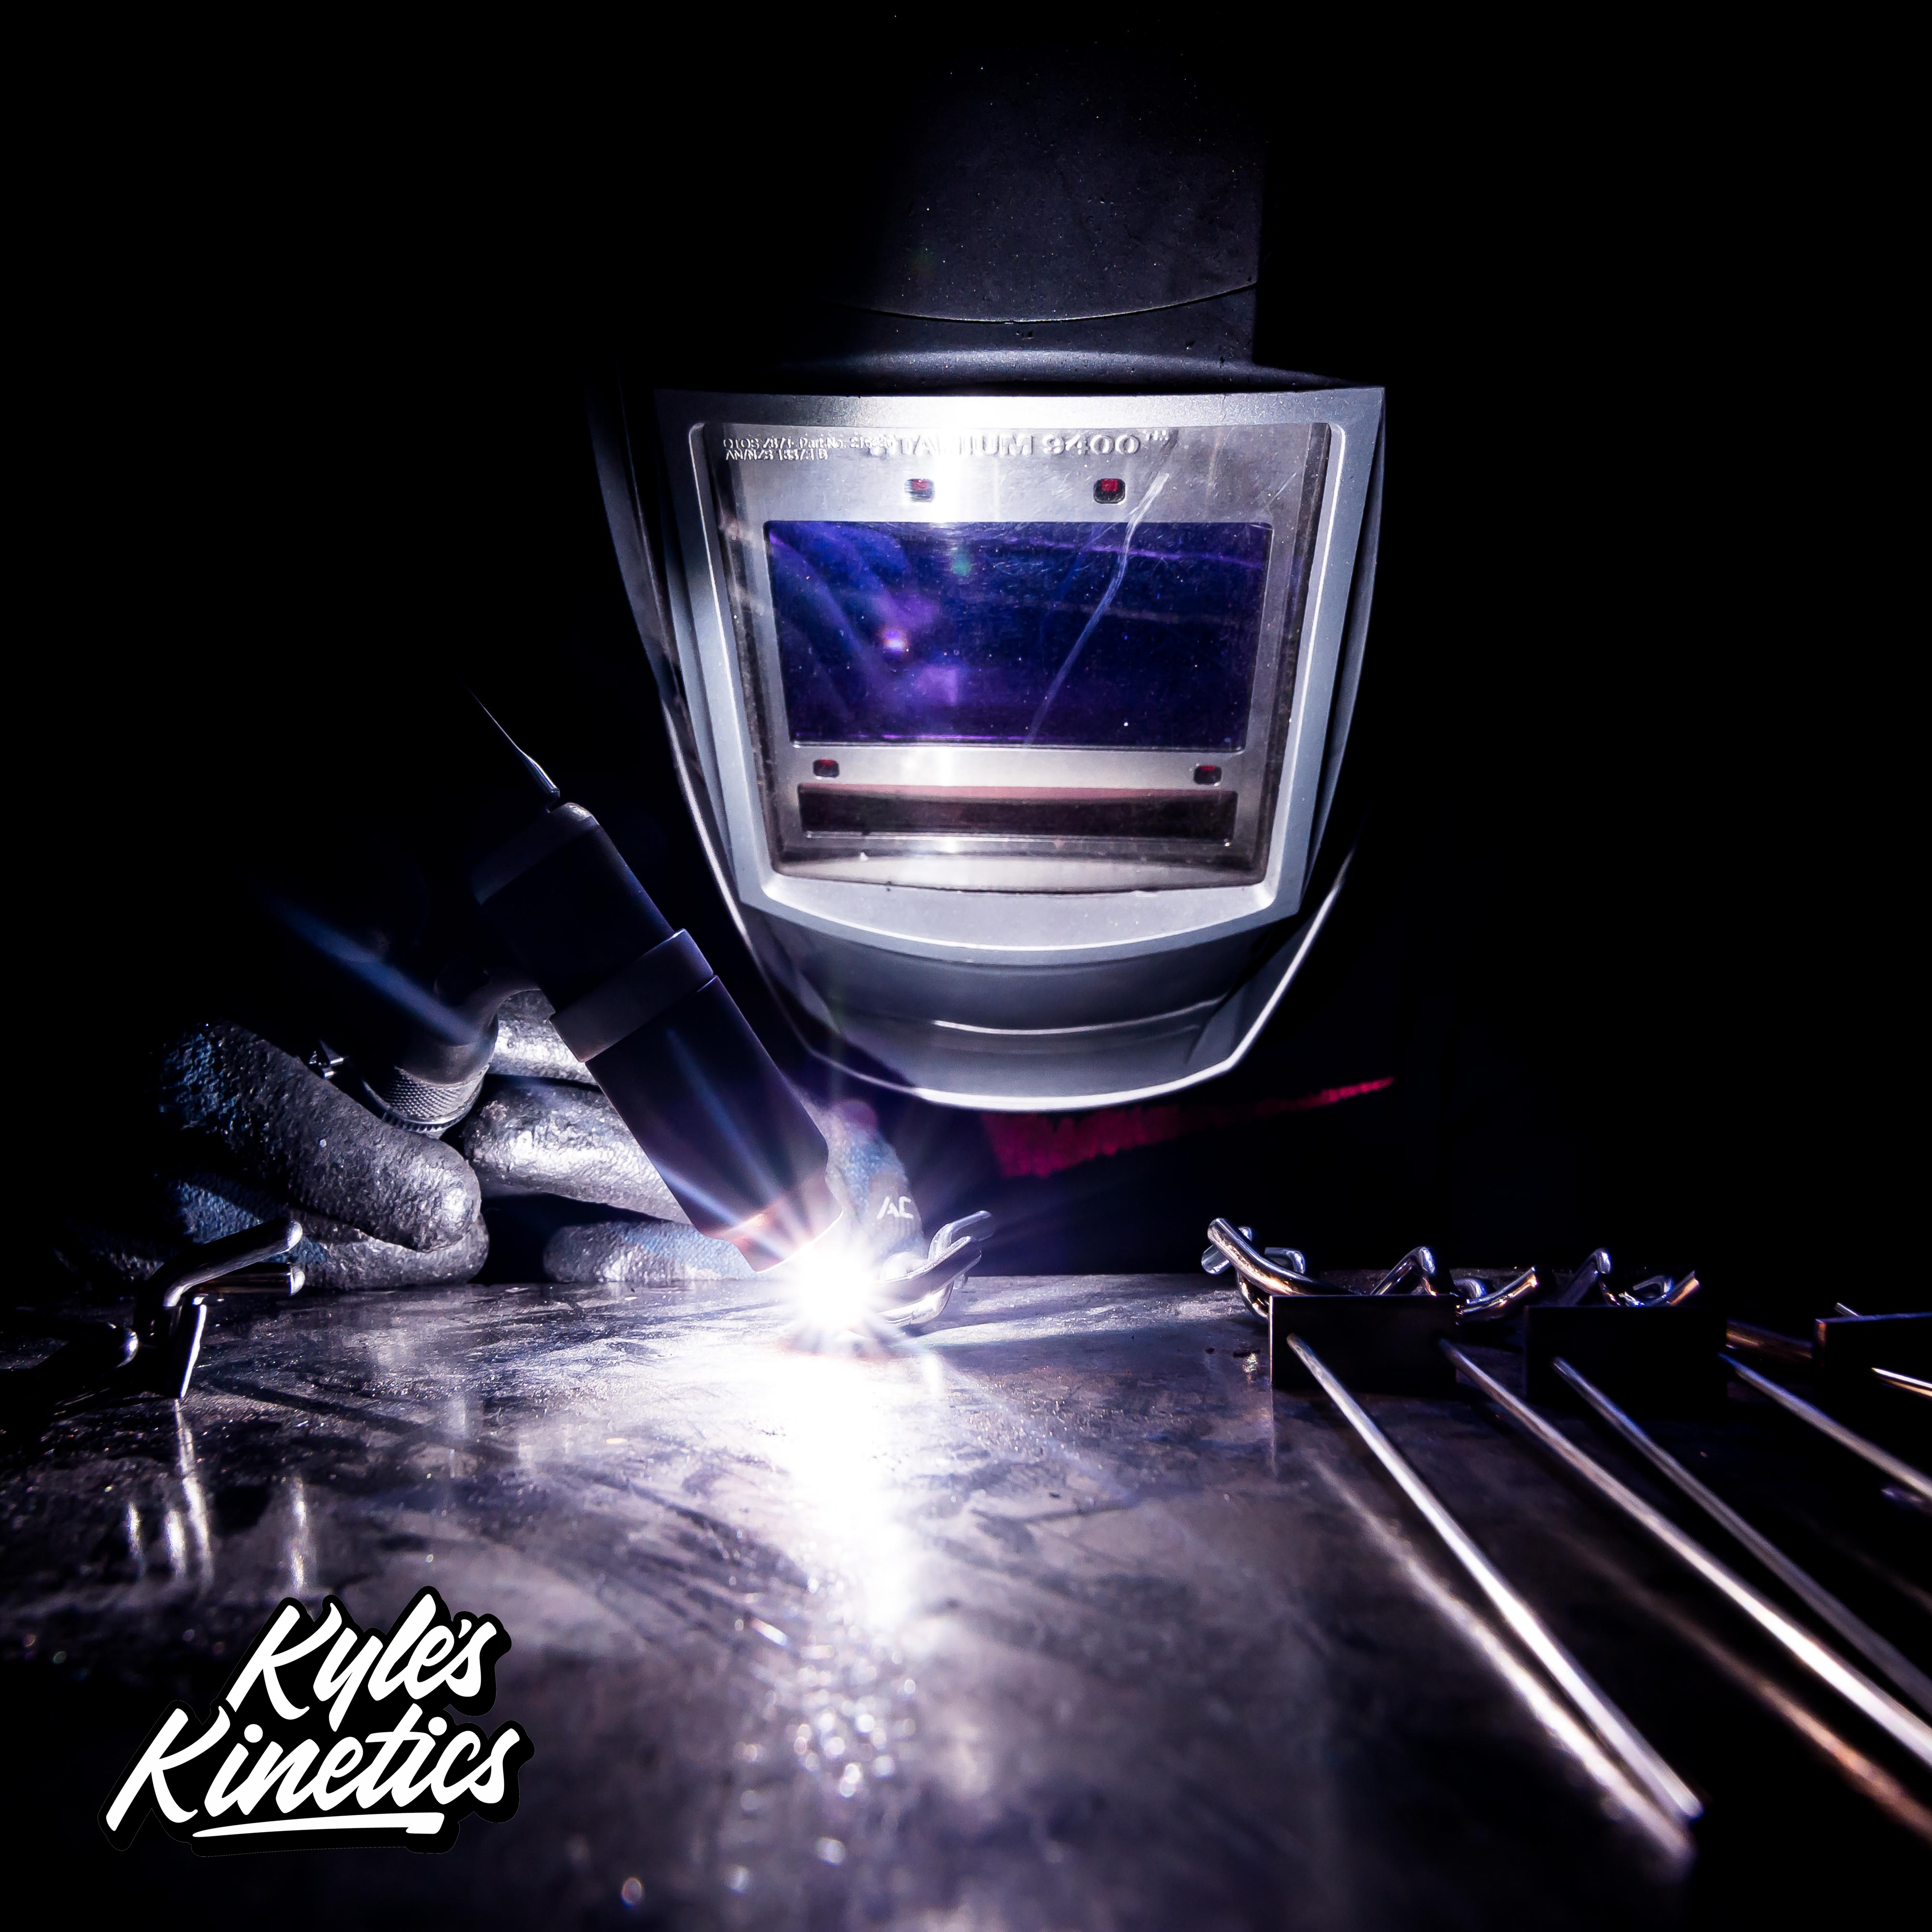 Kyle of Kyle's Kinetics welding stainless steel balancing sculptures in a welding mask